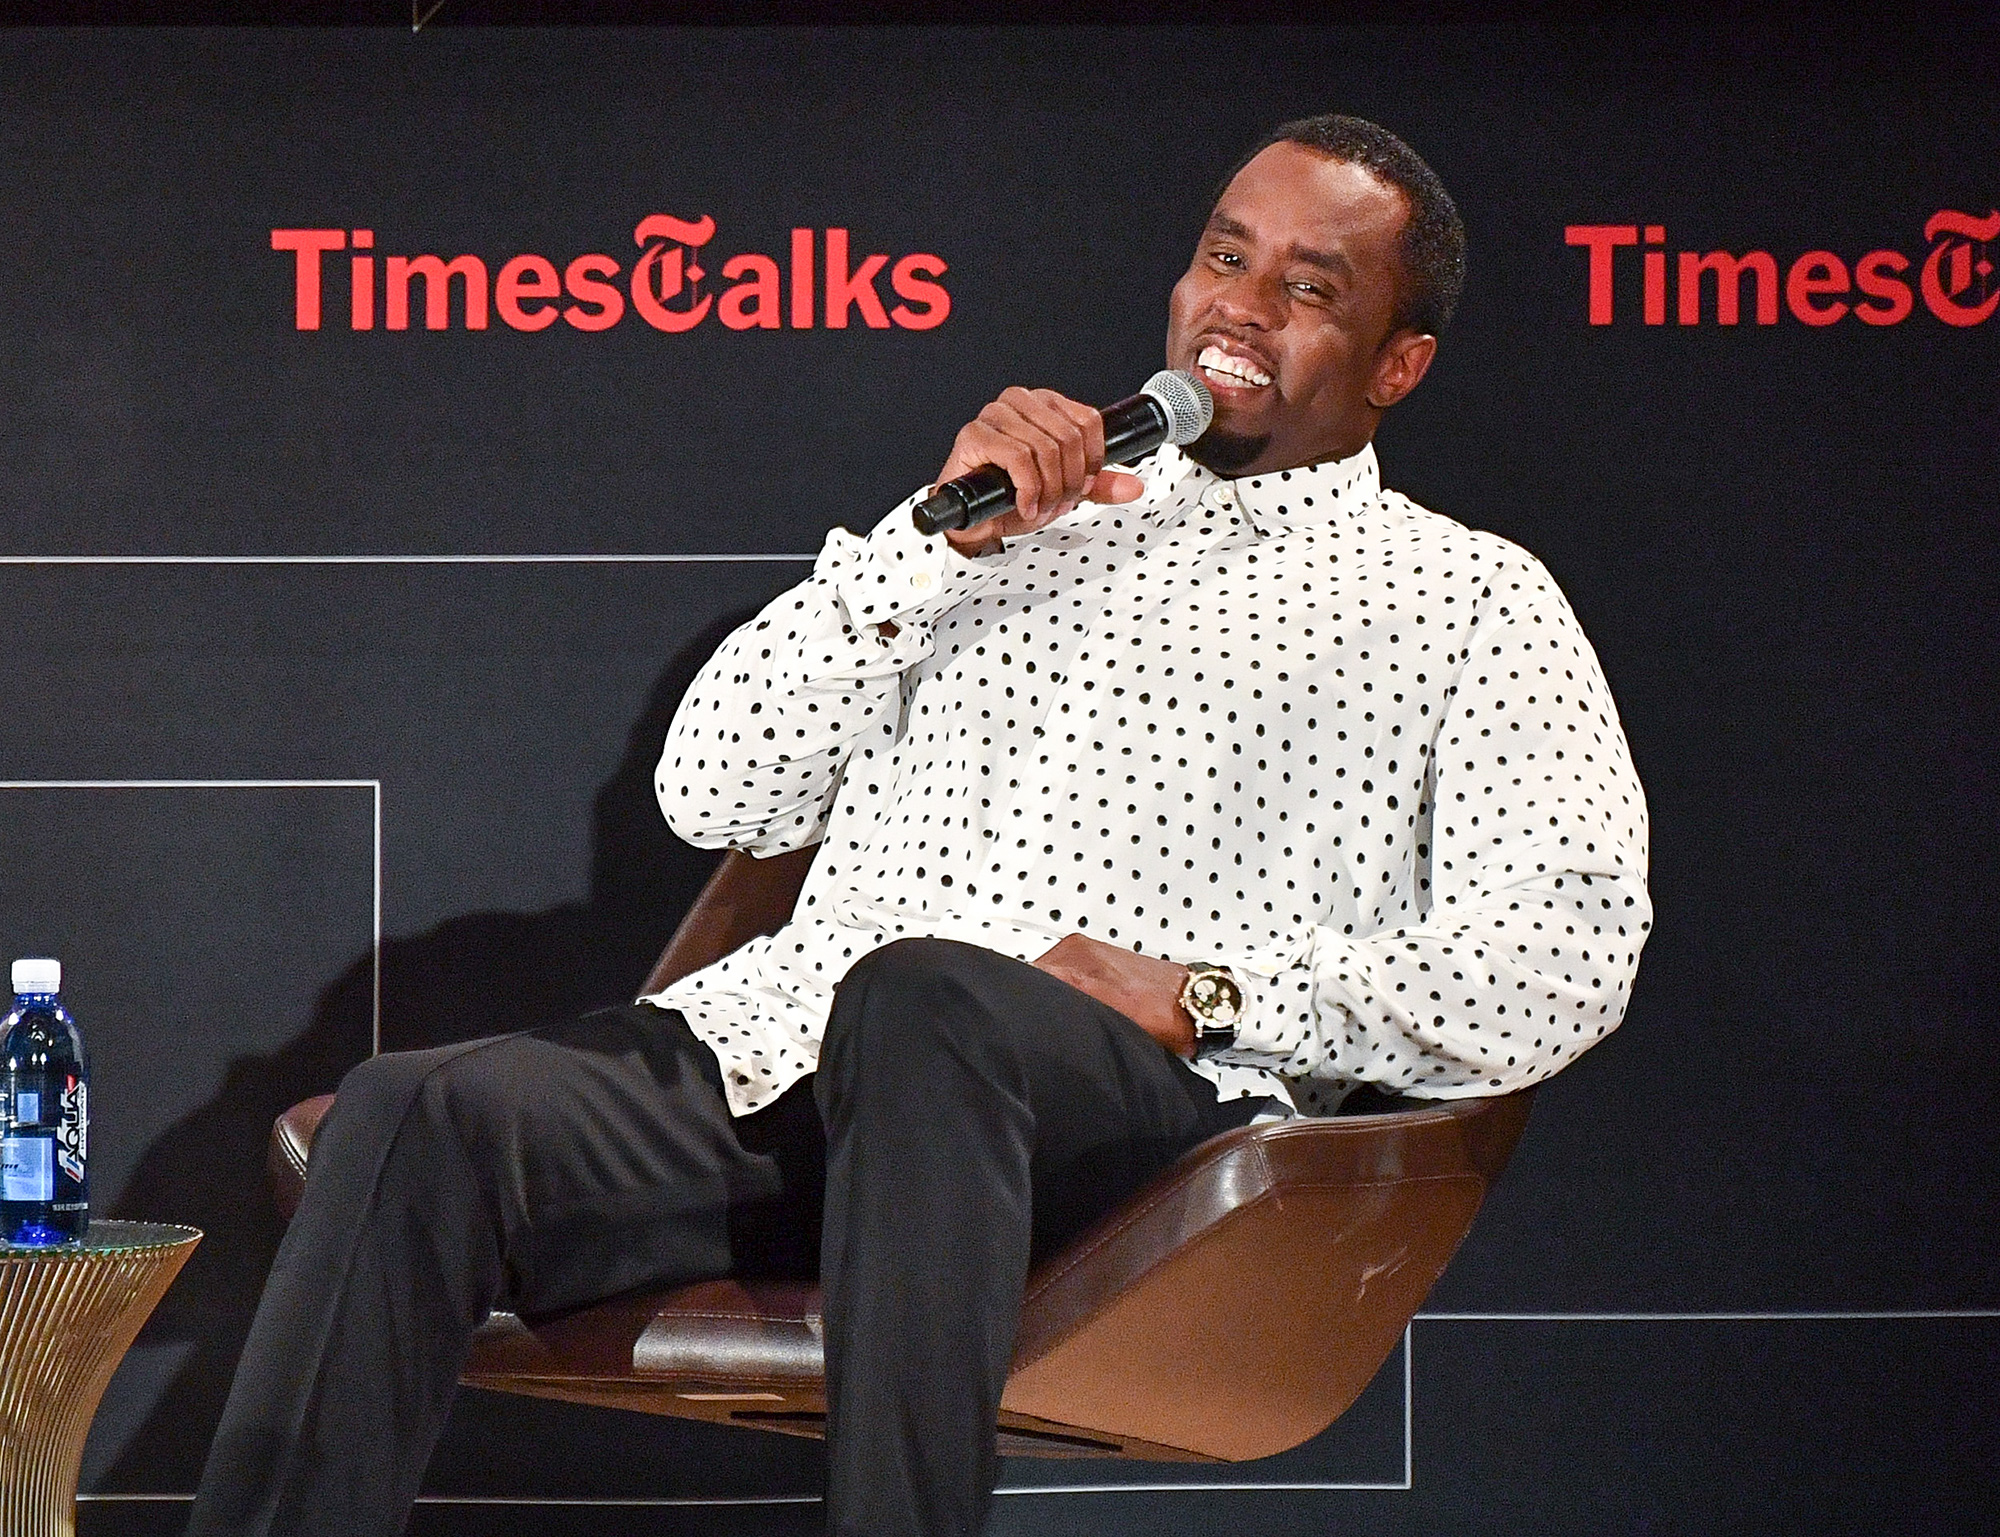 """TimesTalks Presents: An Evening With Sean """"Diddy"""" Combs"""